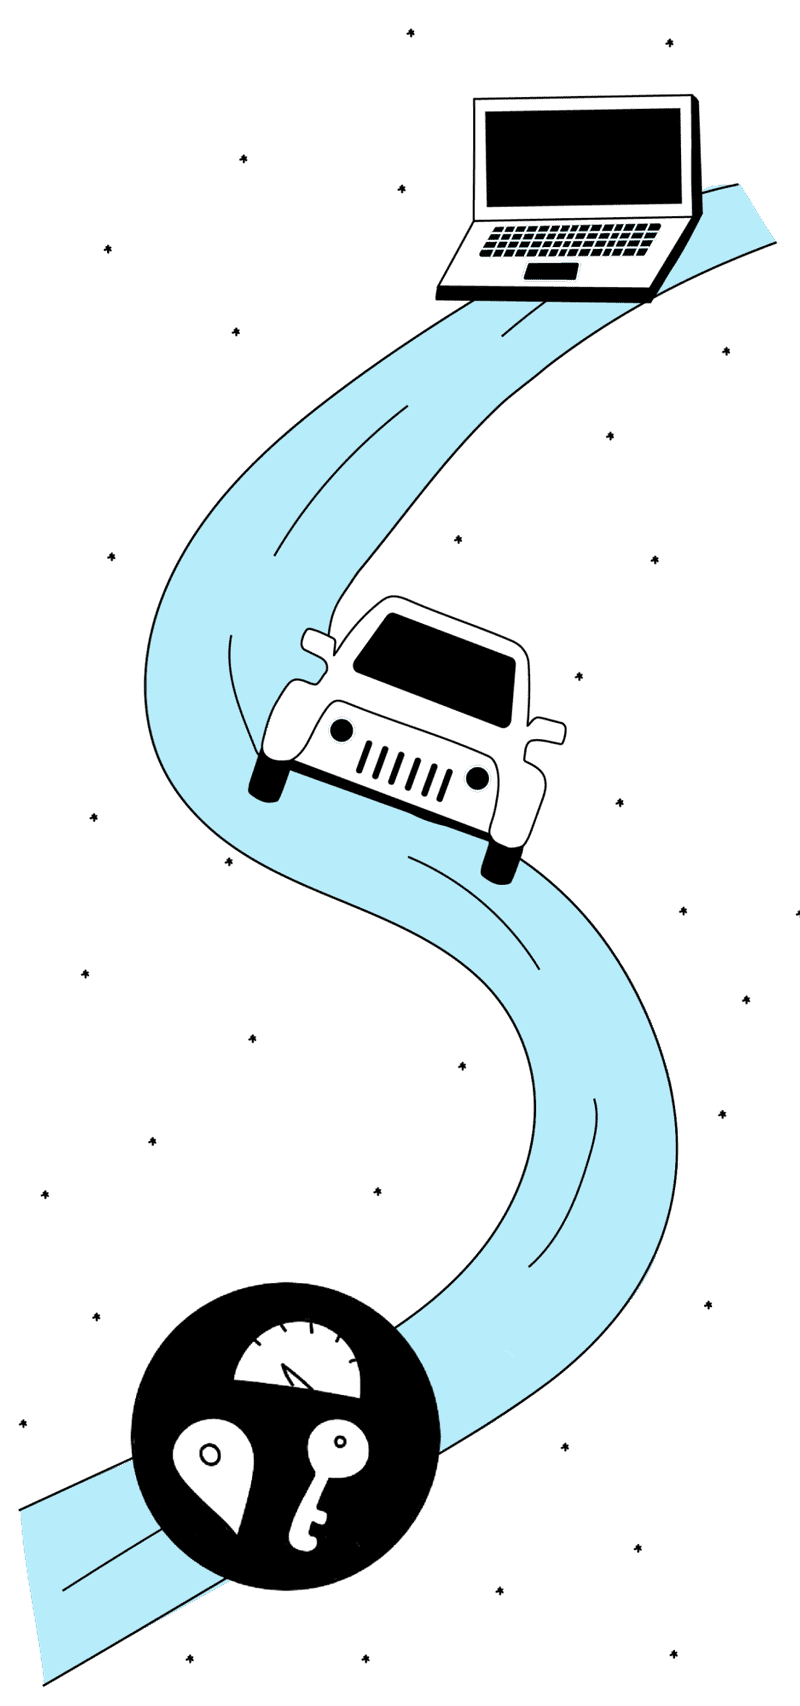 An illustration of a computer, car, and a circle with a location pin, odometer, and key on a road